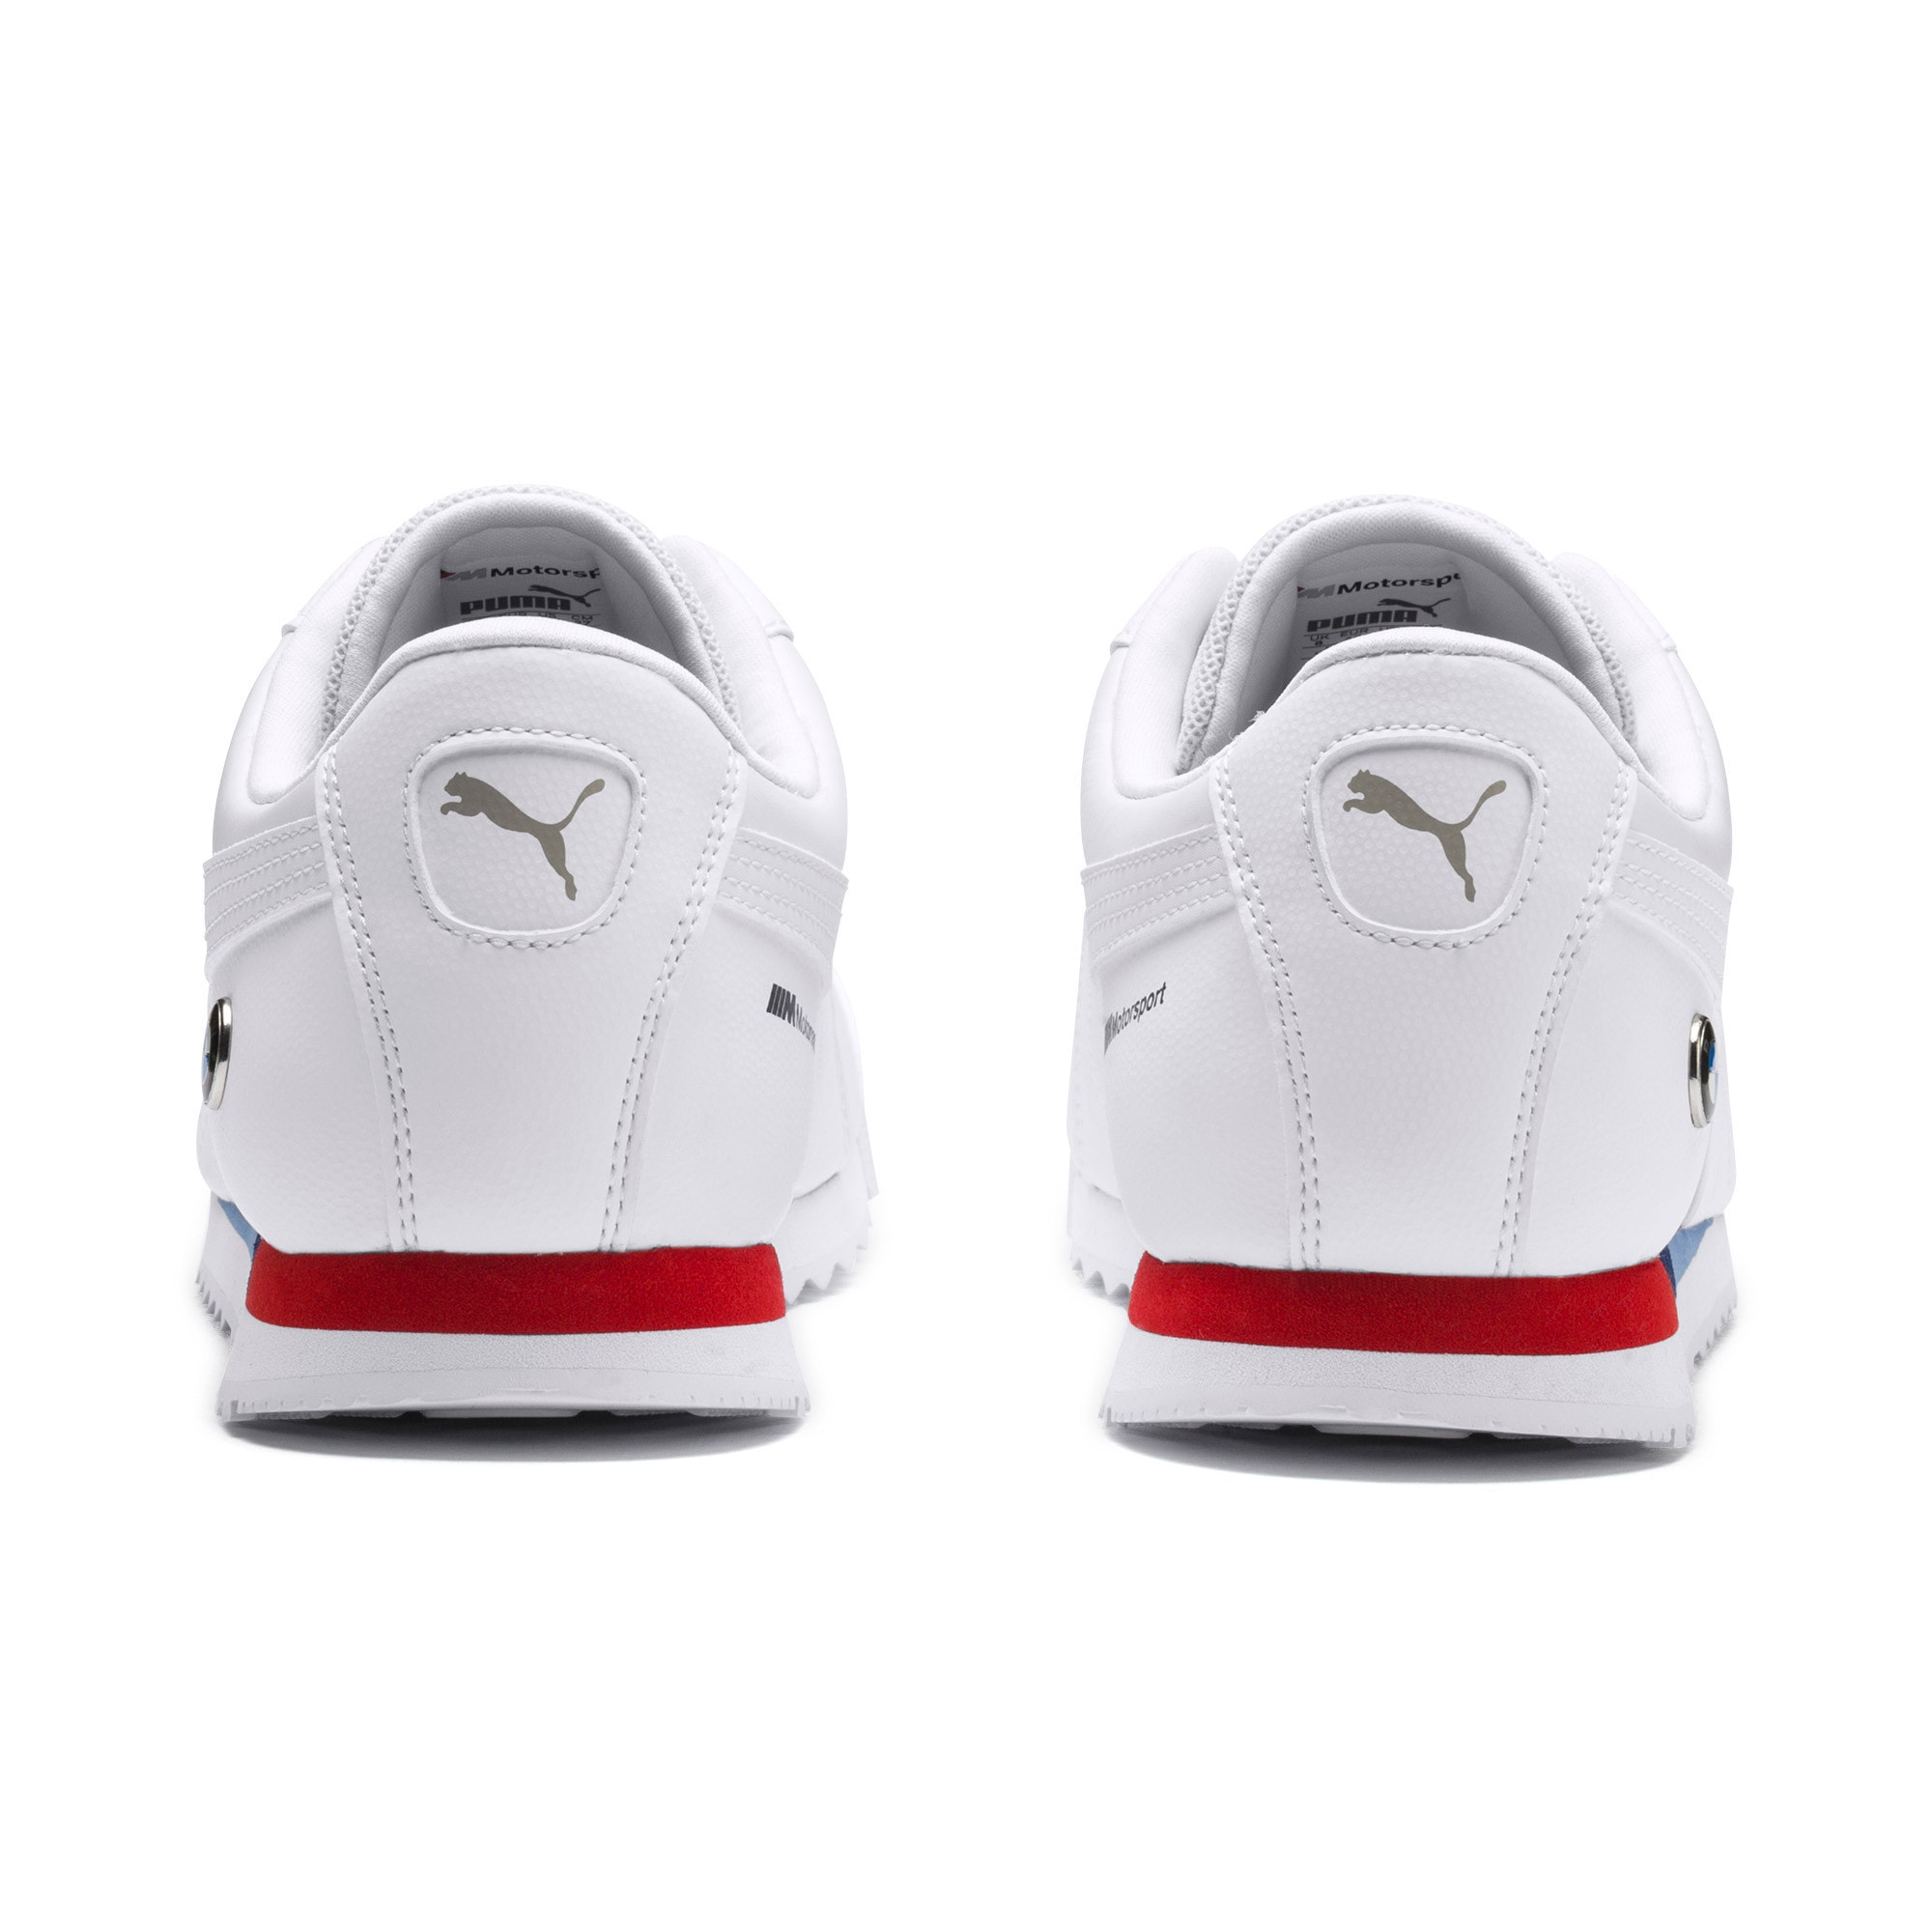 Thumbnail 3 of BMW M Motorsport Roma Men's Sneakers, Puma White-Puma White, medium